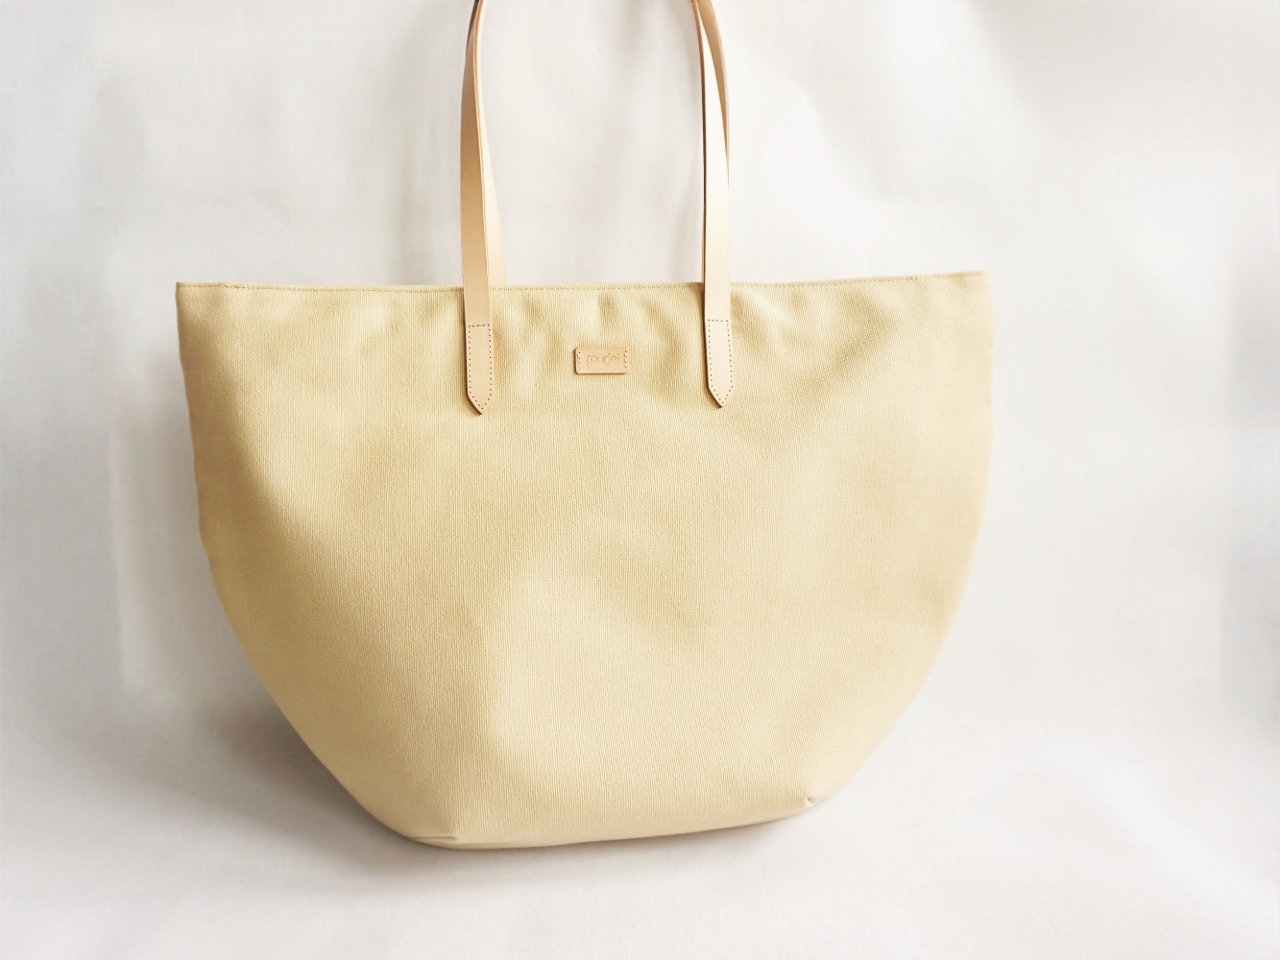 Studio tote medium - Khaki (9).jpg